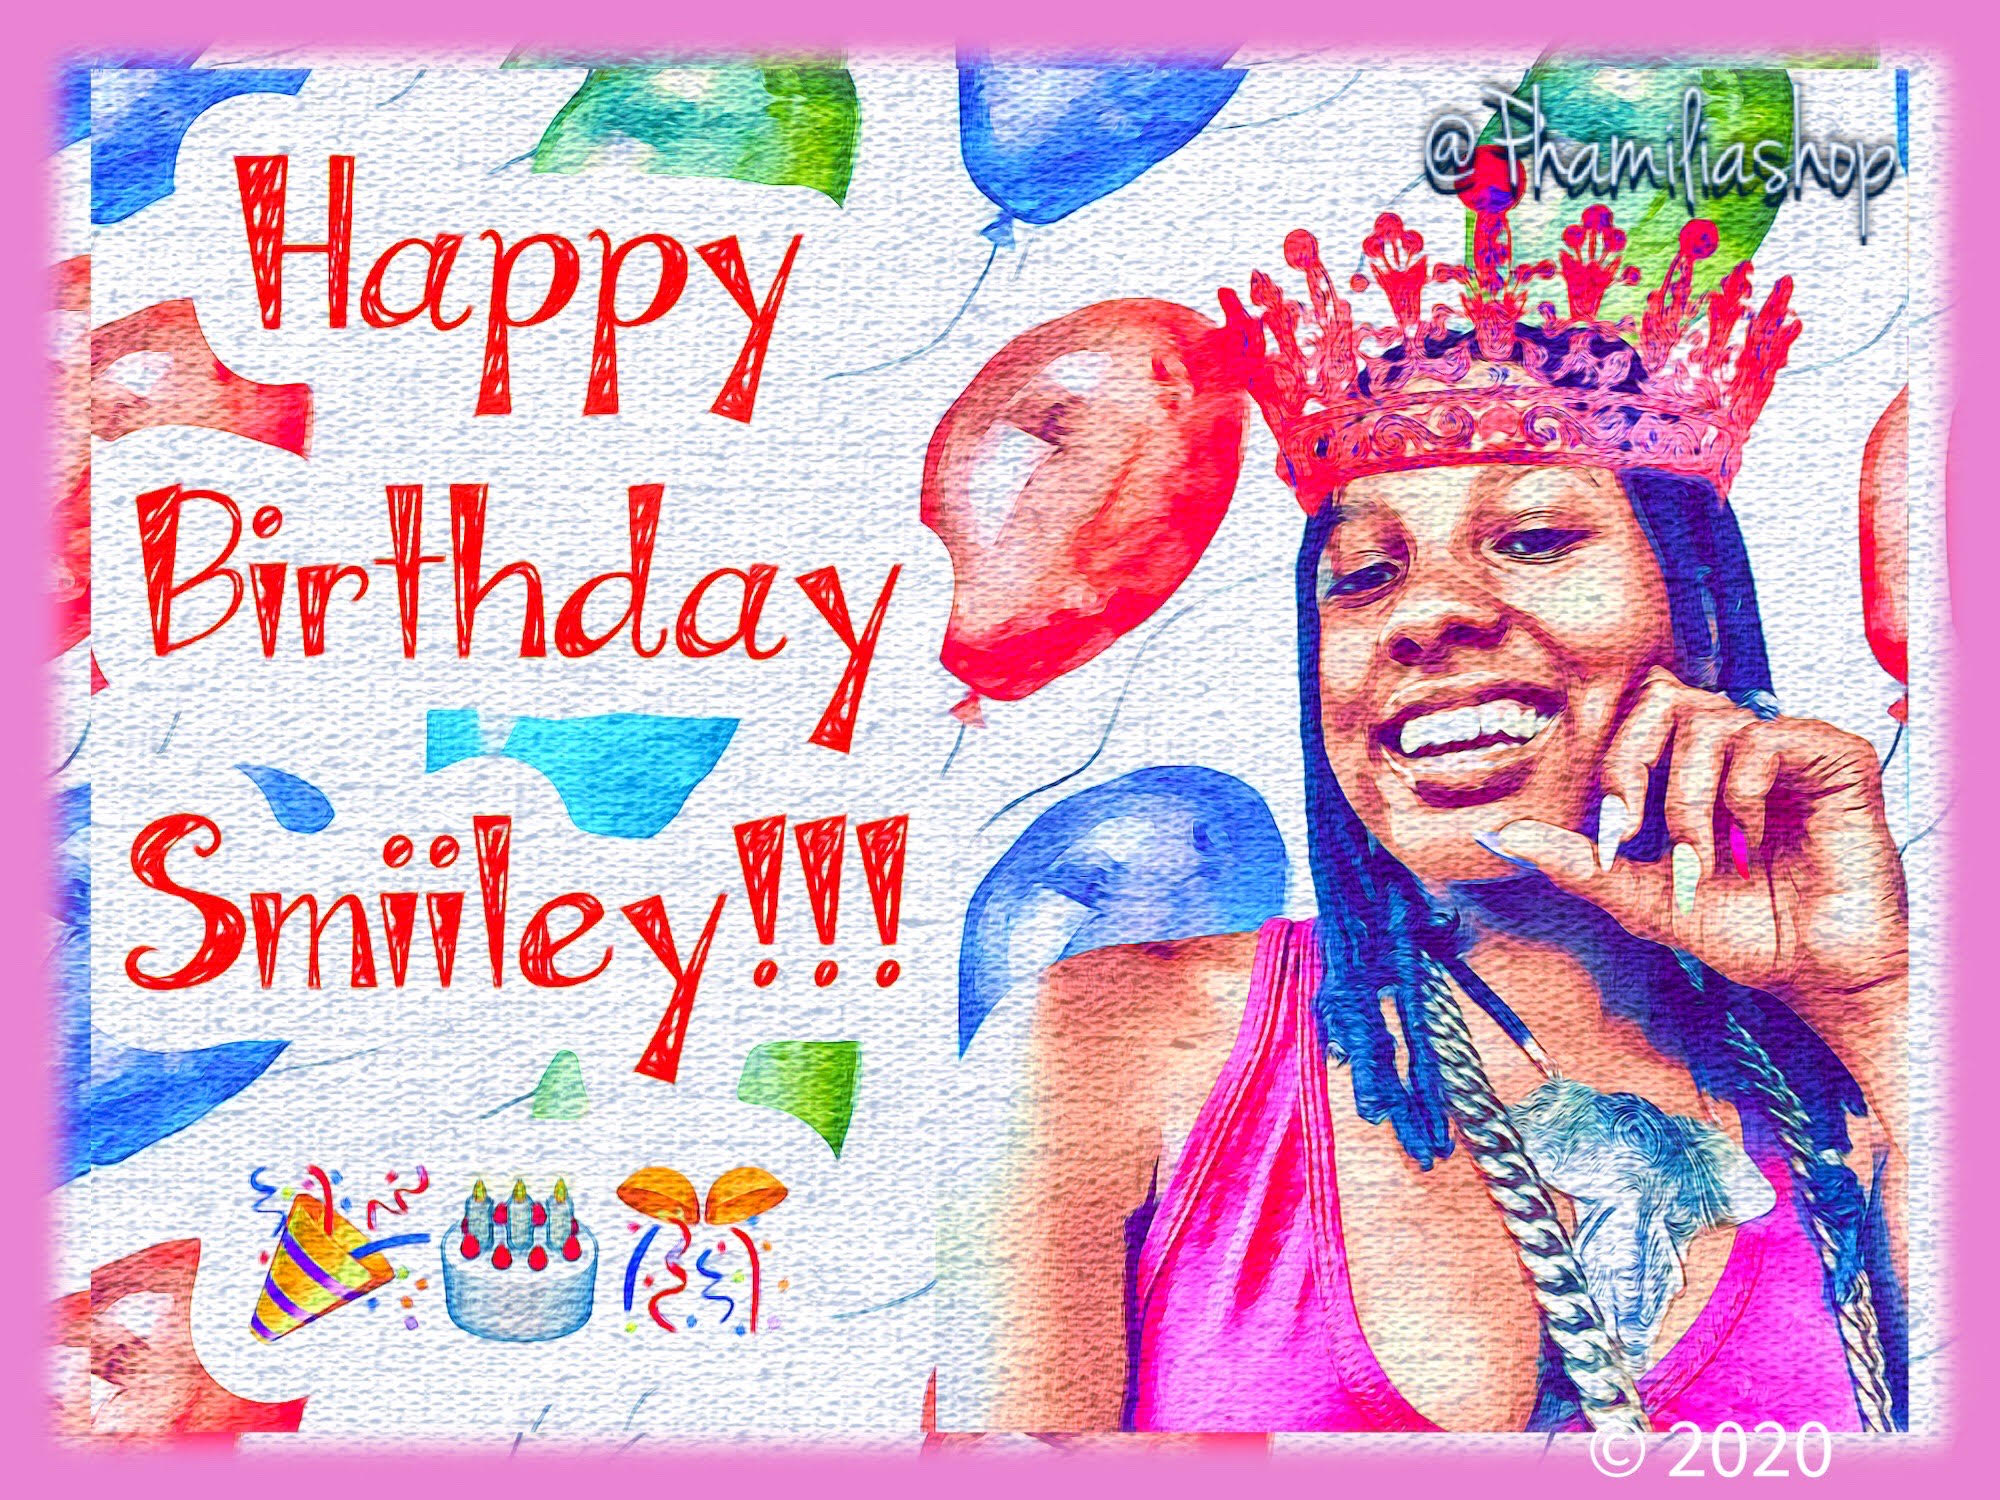 Happy Birthday Smiiley